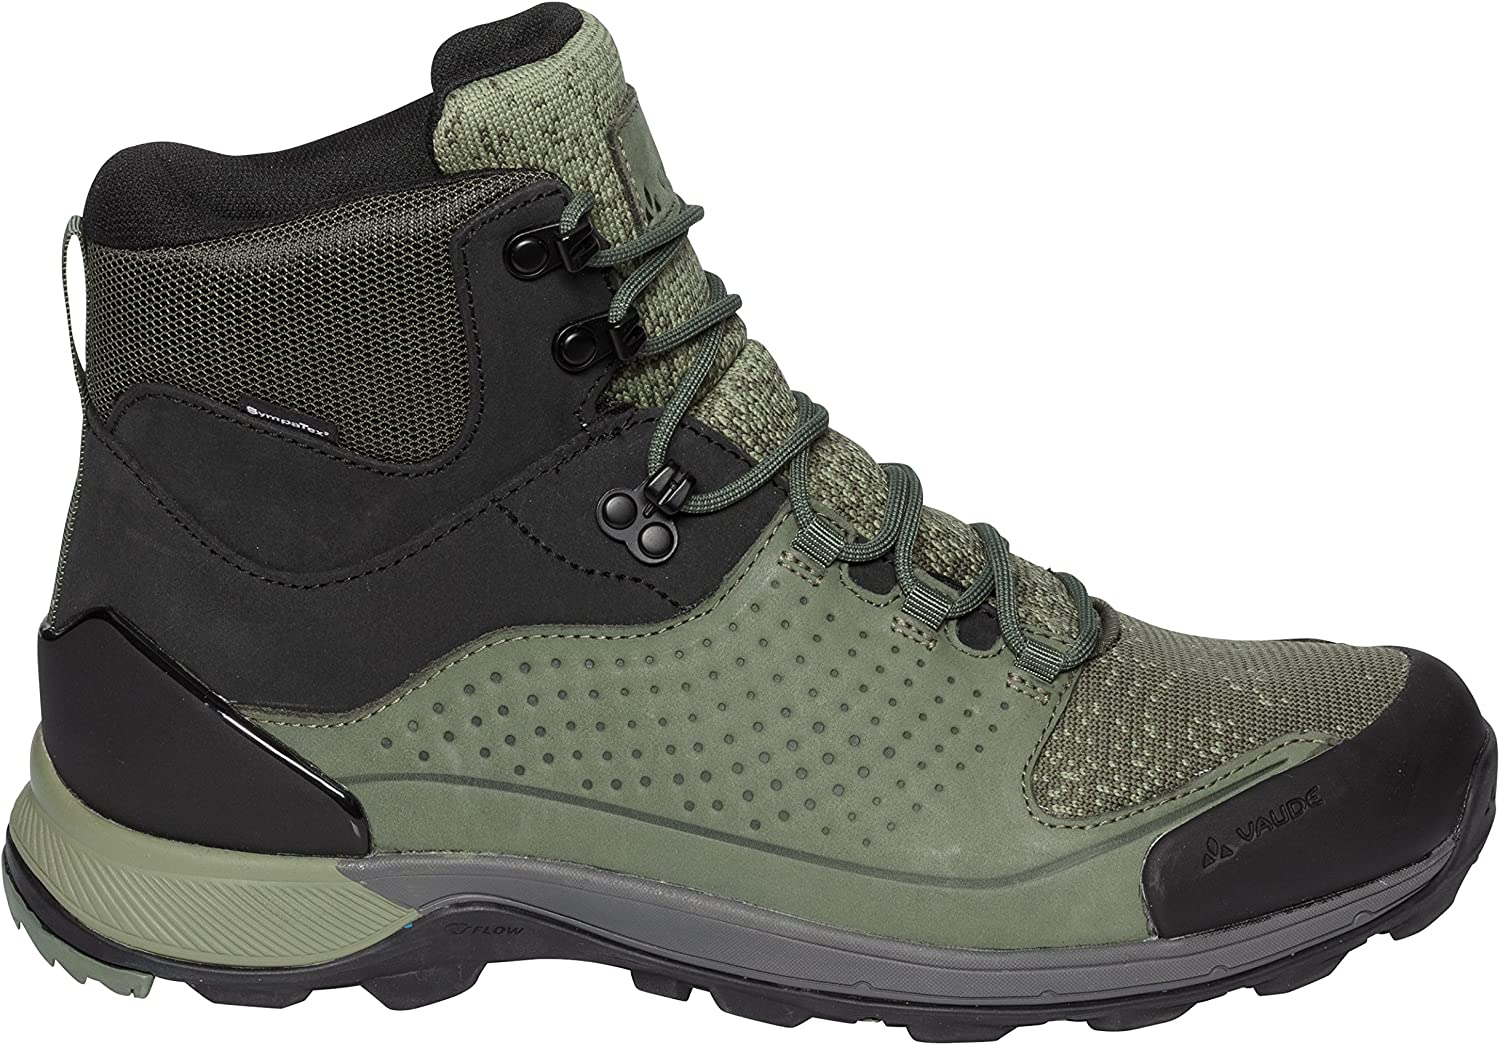 VAUDE Men's High Rise Shoes Hiking Max 51% Popular OFF